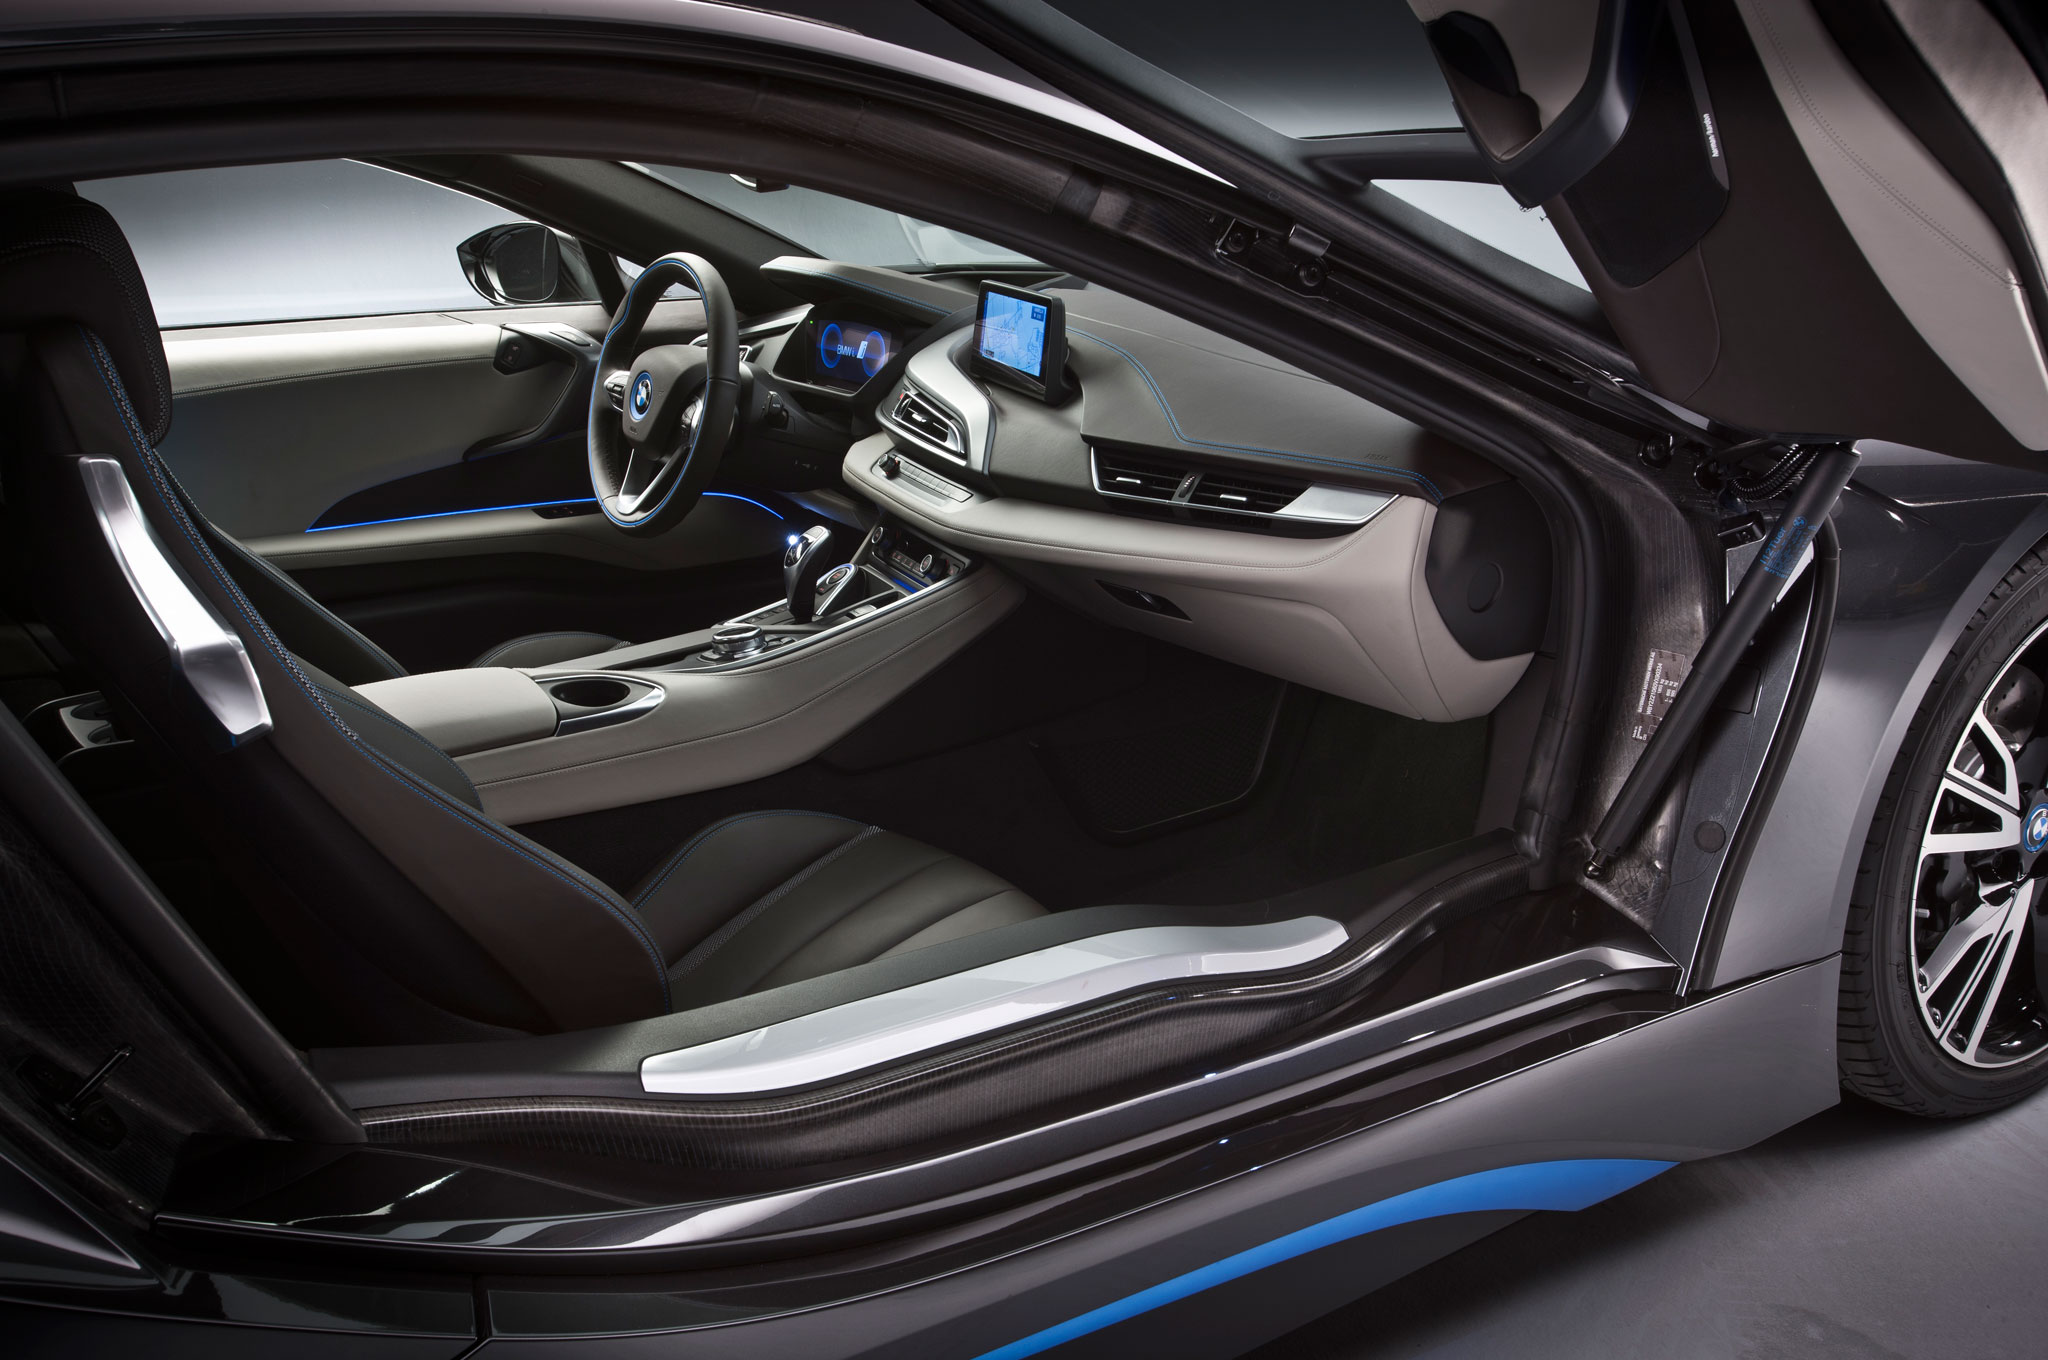 2014 Design Of The Year BMW I8